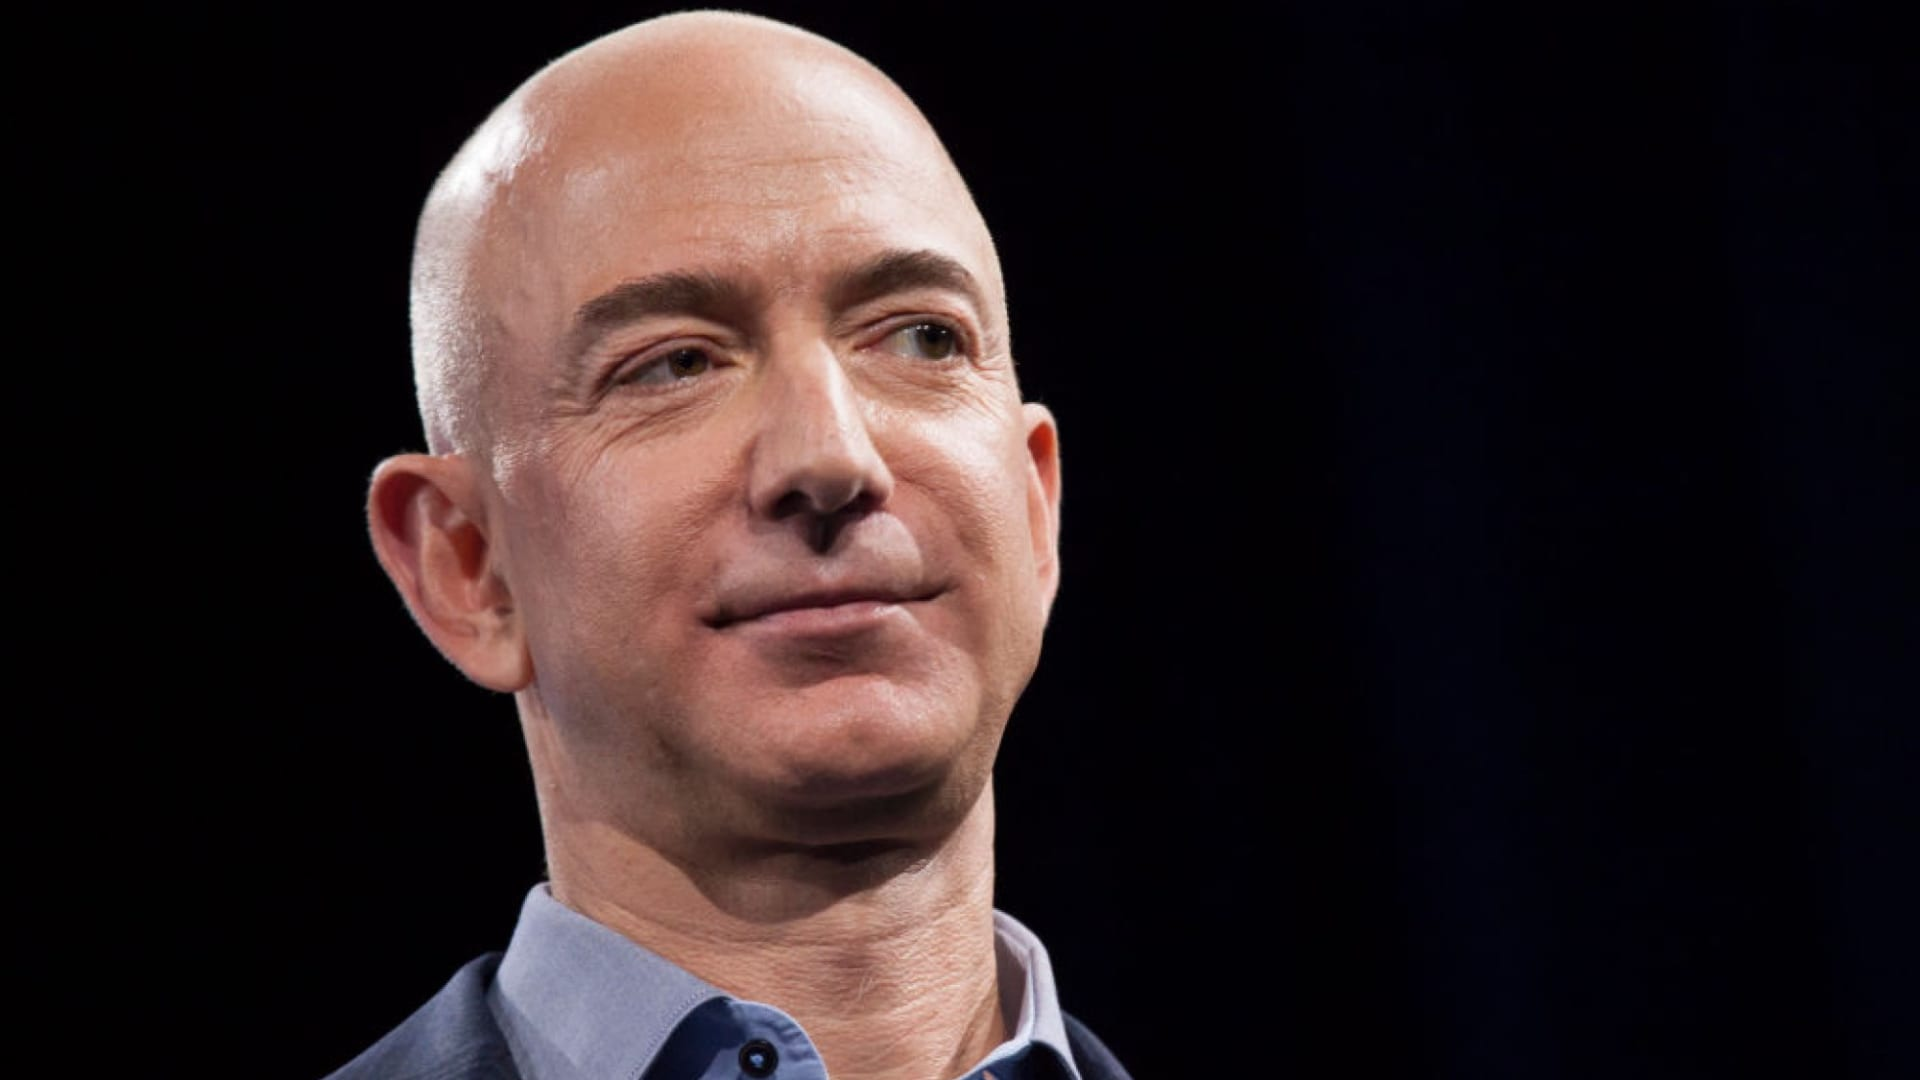 With Just 1 Word, Jeff Bezos Shared a ...